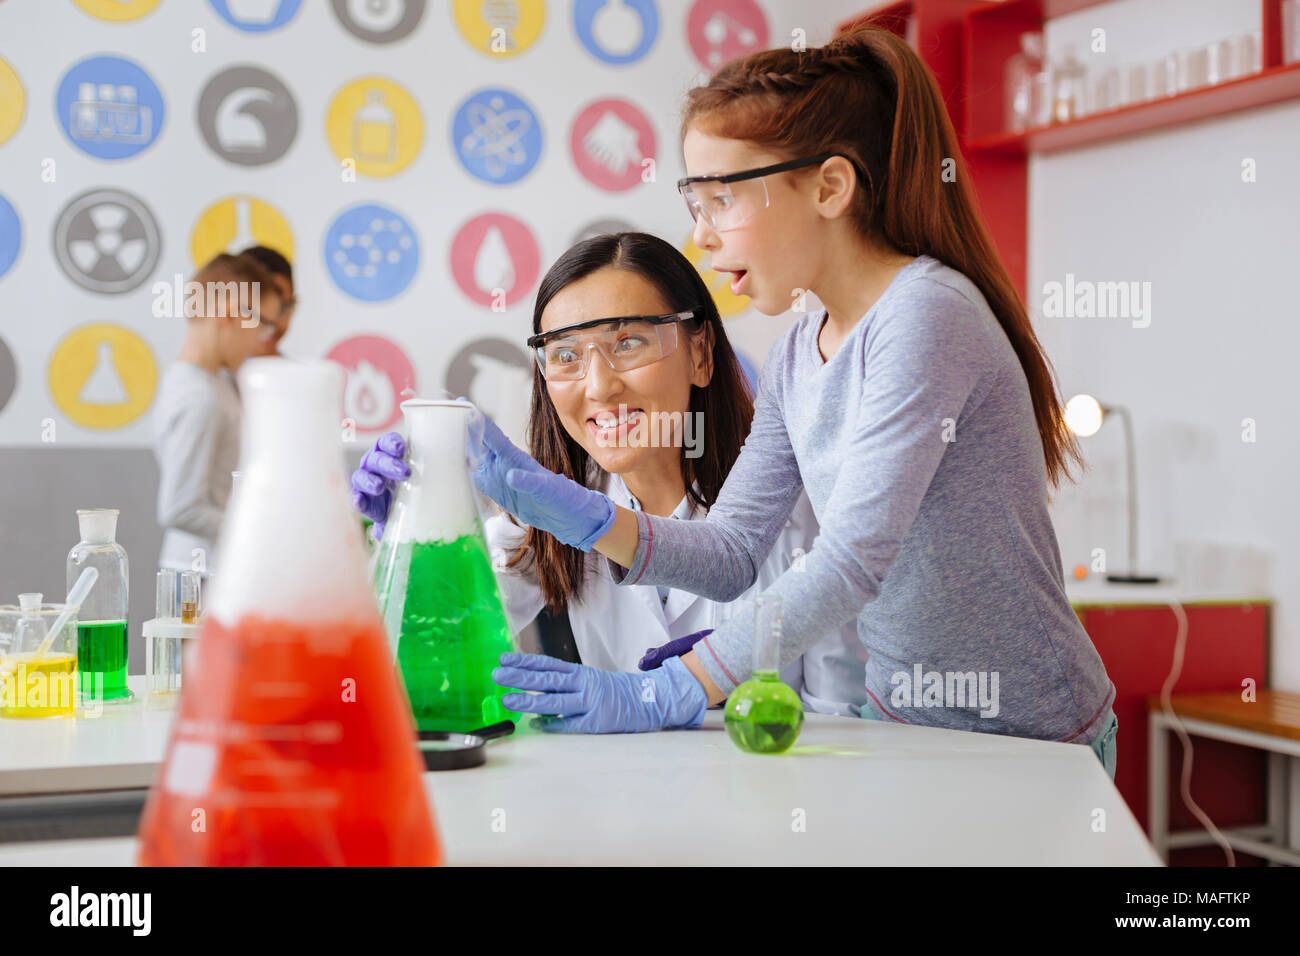 Surprised teacher and student being surprised with chemical reaction - Stock Image